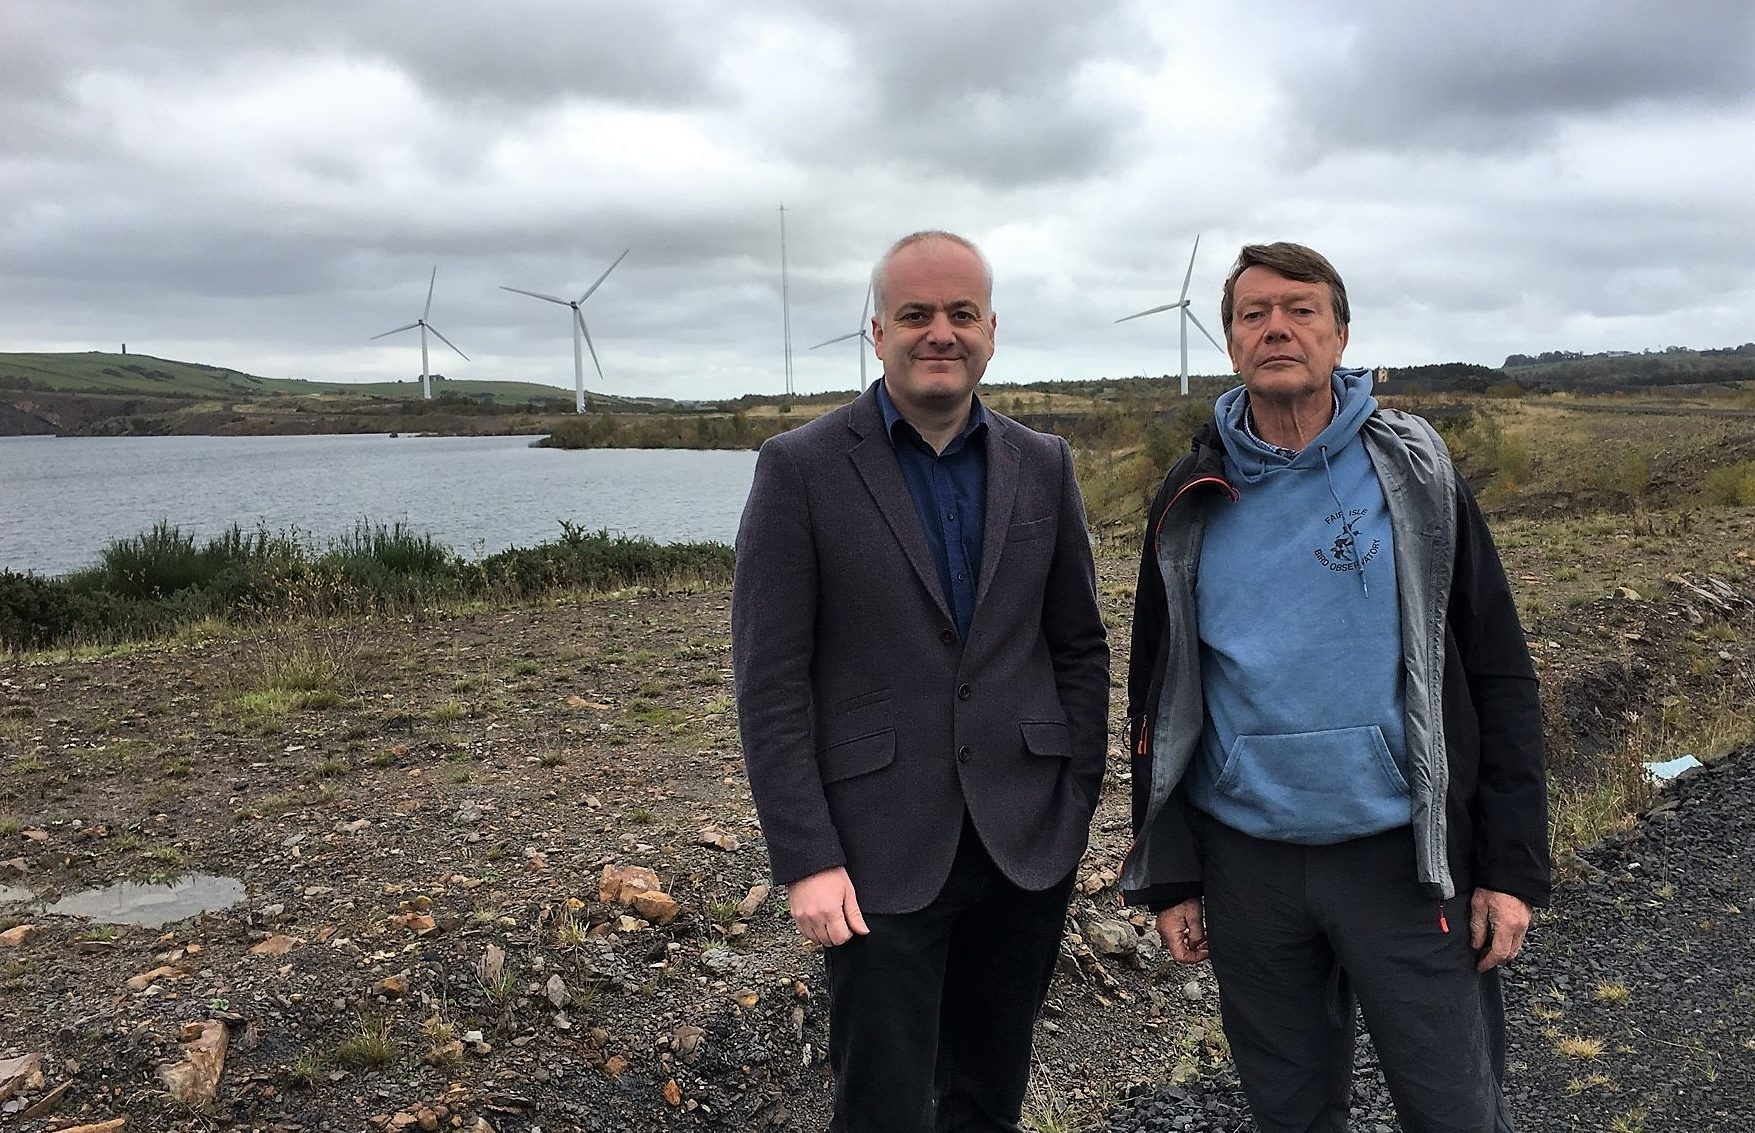 Mark Ruskell with Dave Batchelor at the site